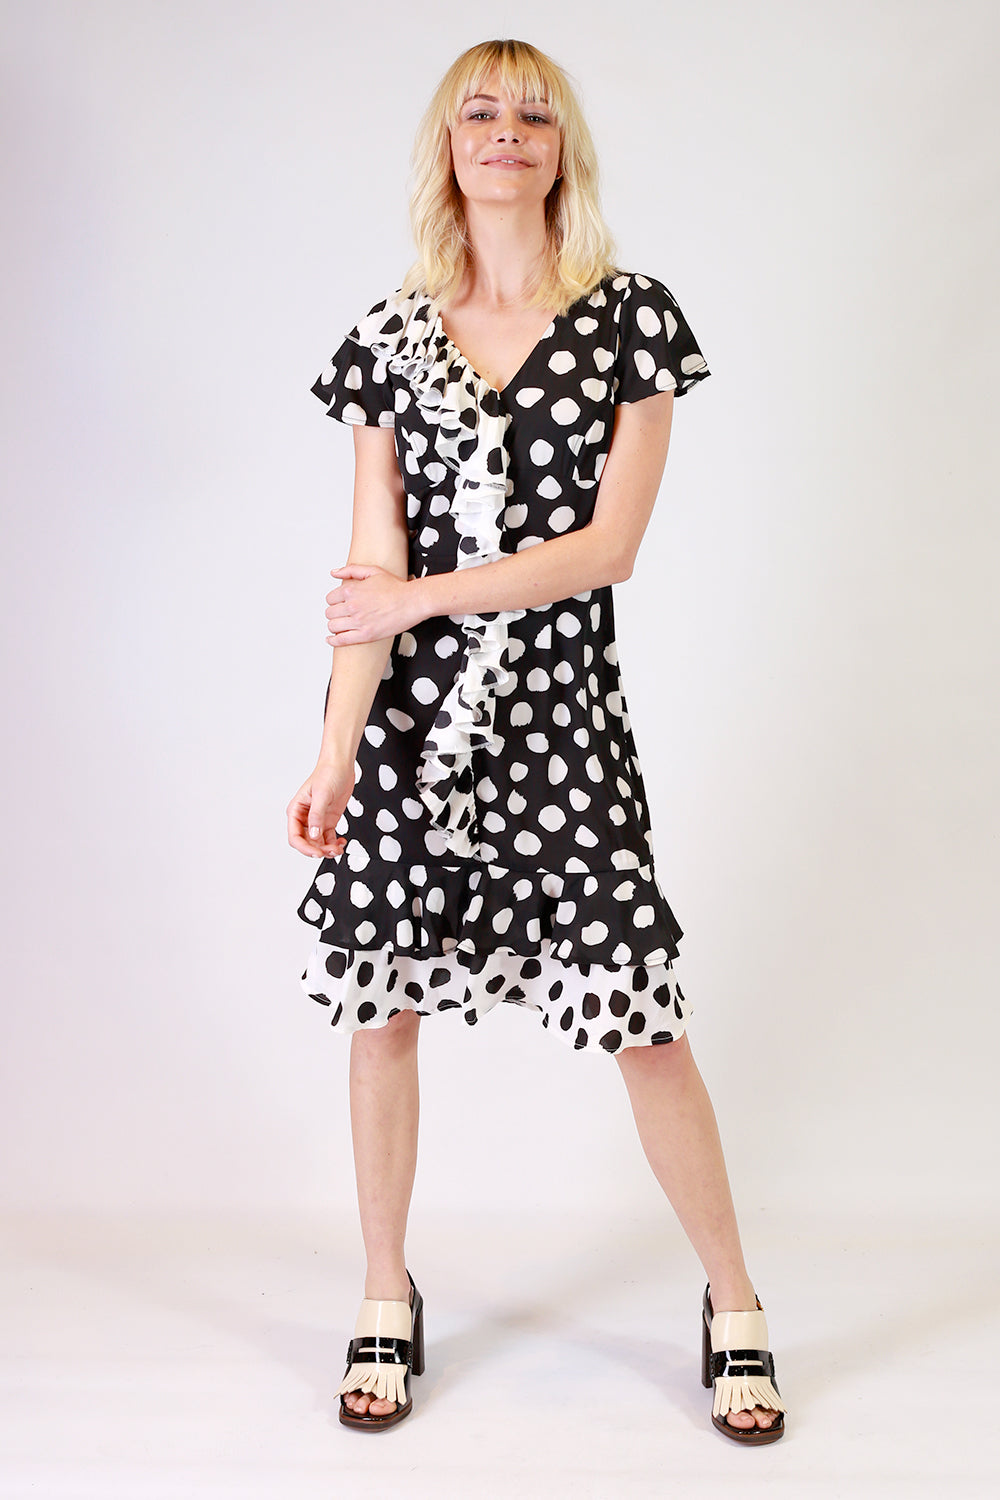 Pigeon Post Spot Dress | Stretton Dresses NZ | Spot Dresses NZ | Summer Dresses NZ